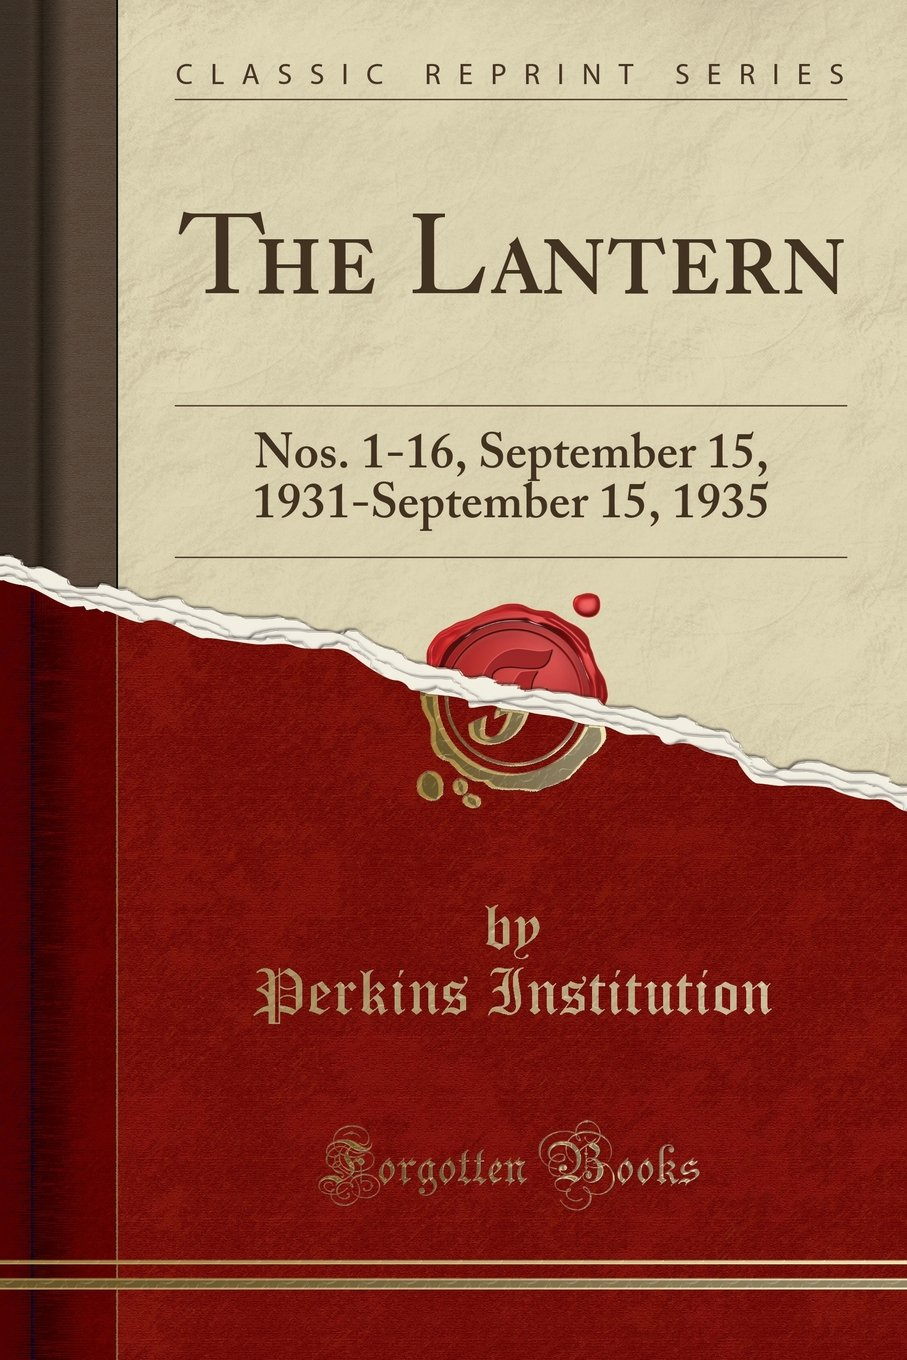 The Lantern: Nos. 1-16, September 15, 1931-September 15, 1935 (Classic Reprint) PDF